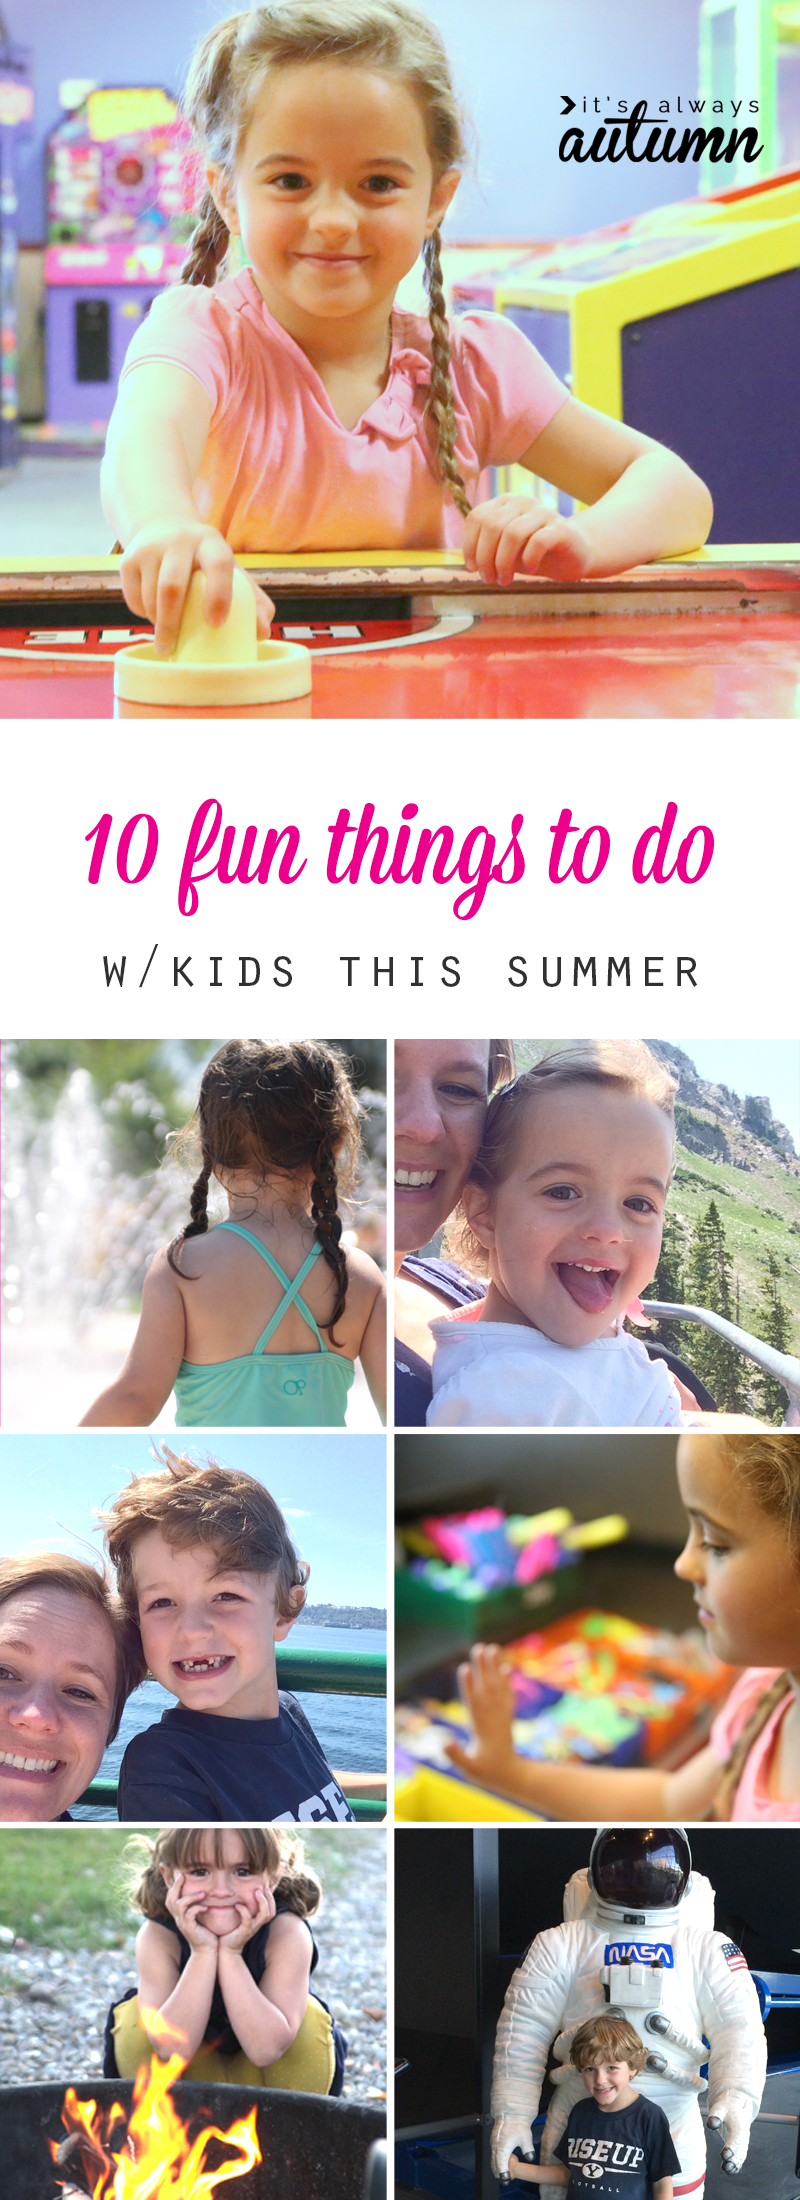 Don't let boredom ruin your summer! 10 super fun things to do with your kids when you need to get out of the house.